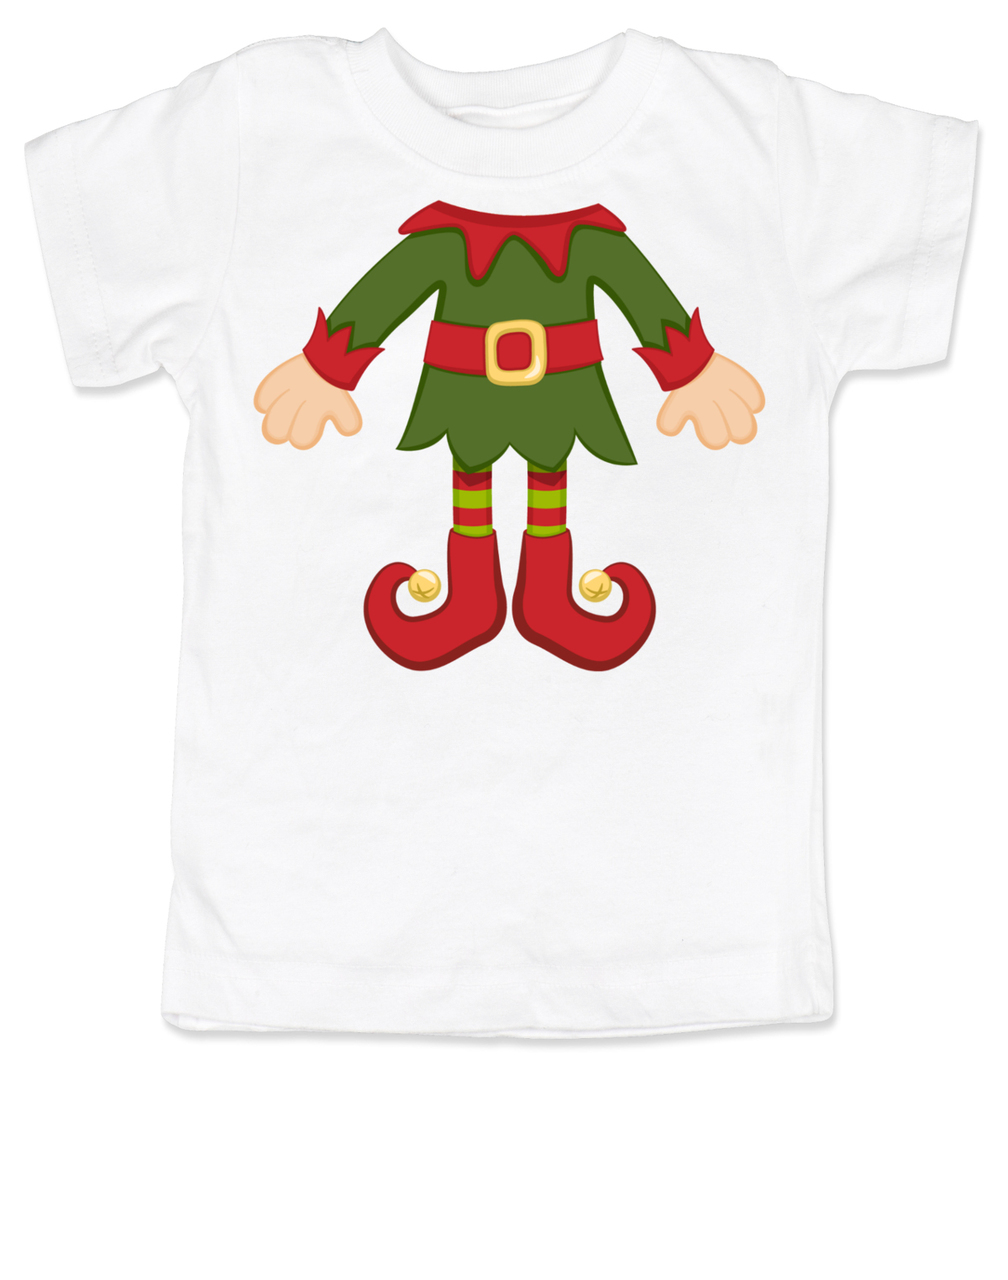 b8c56a4aa Elf Body Christmas toddler shirt, Little bodies toddler t-shirt, Santas  little elf